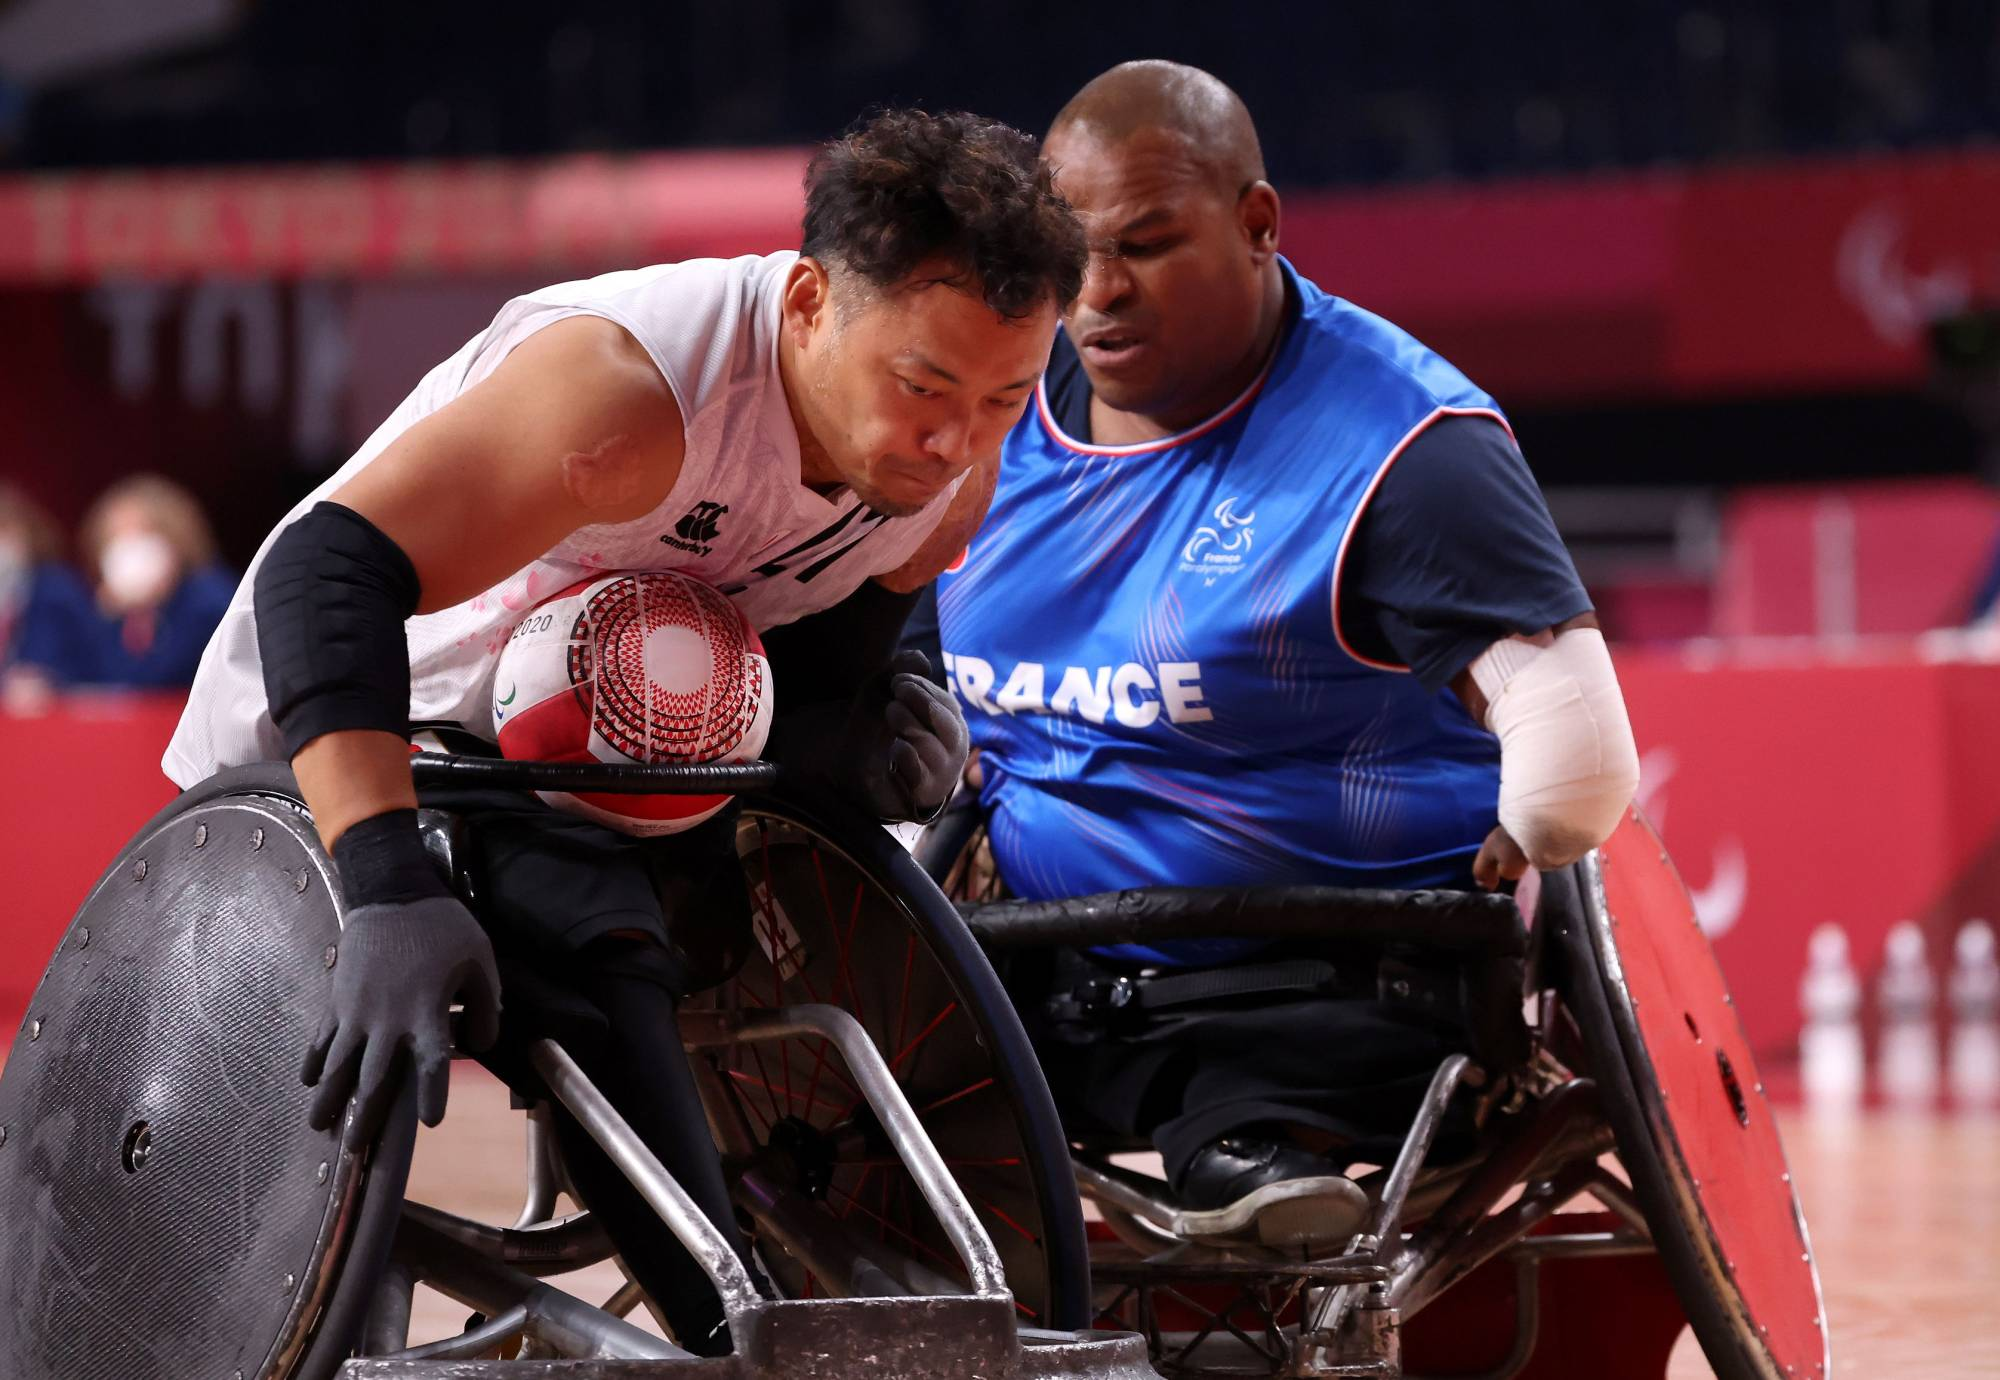 Japan's Yukinobu Ike (left) tries to get past France's Cedric Nankin during their wheelchair rugby match   REUTERS